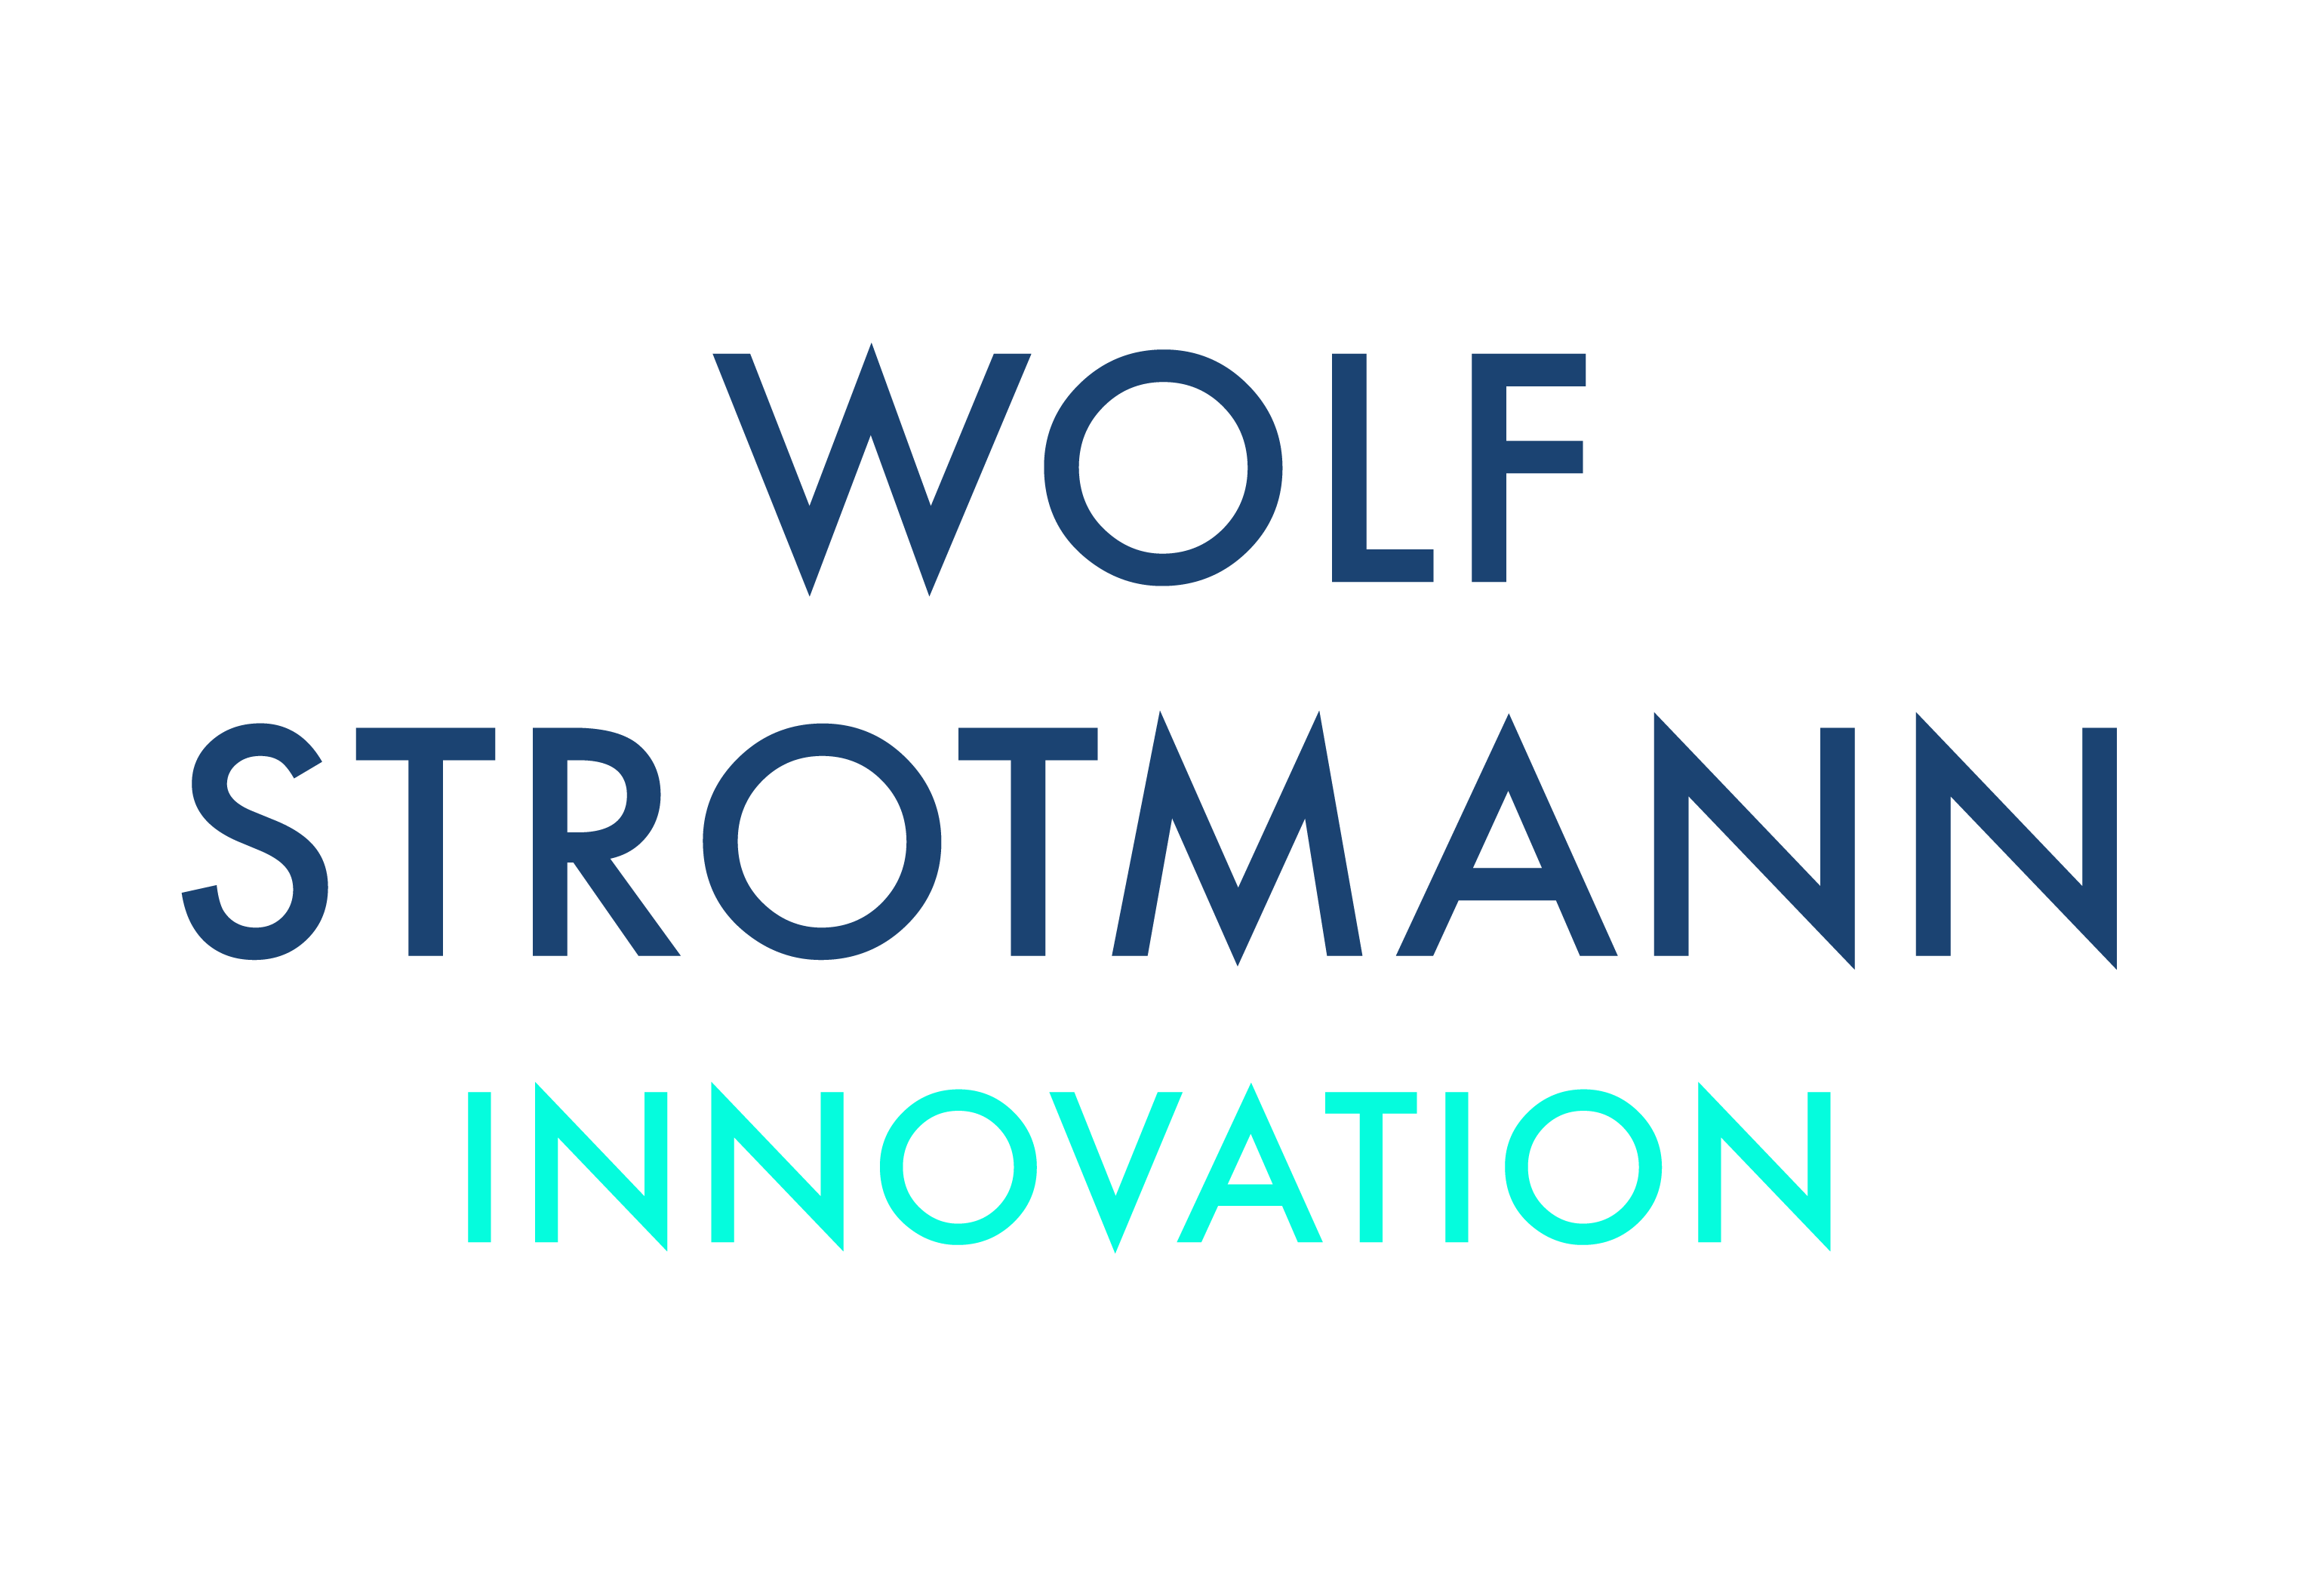 Wolf Strotmann Innovation